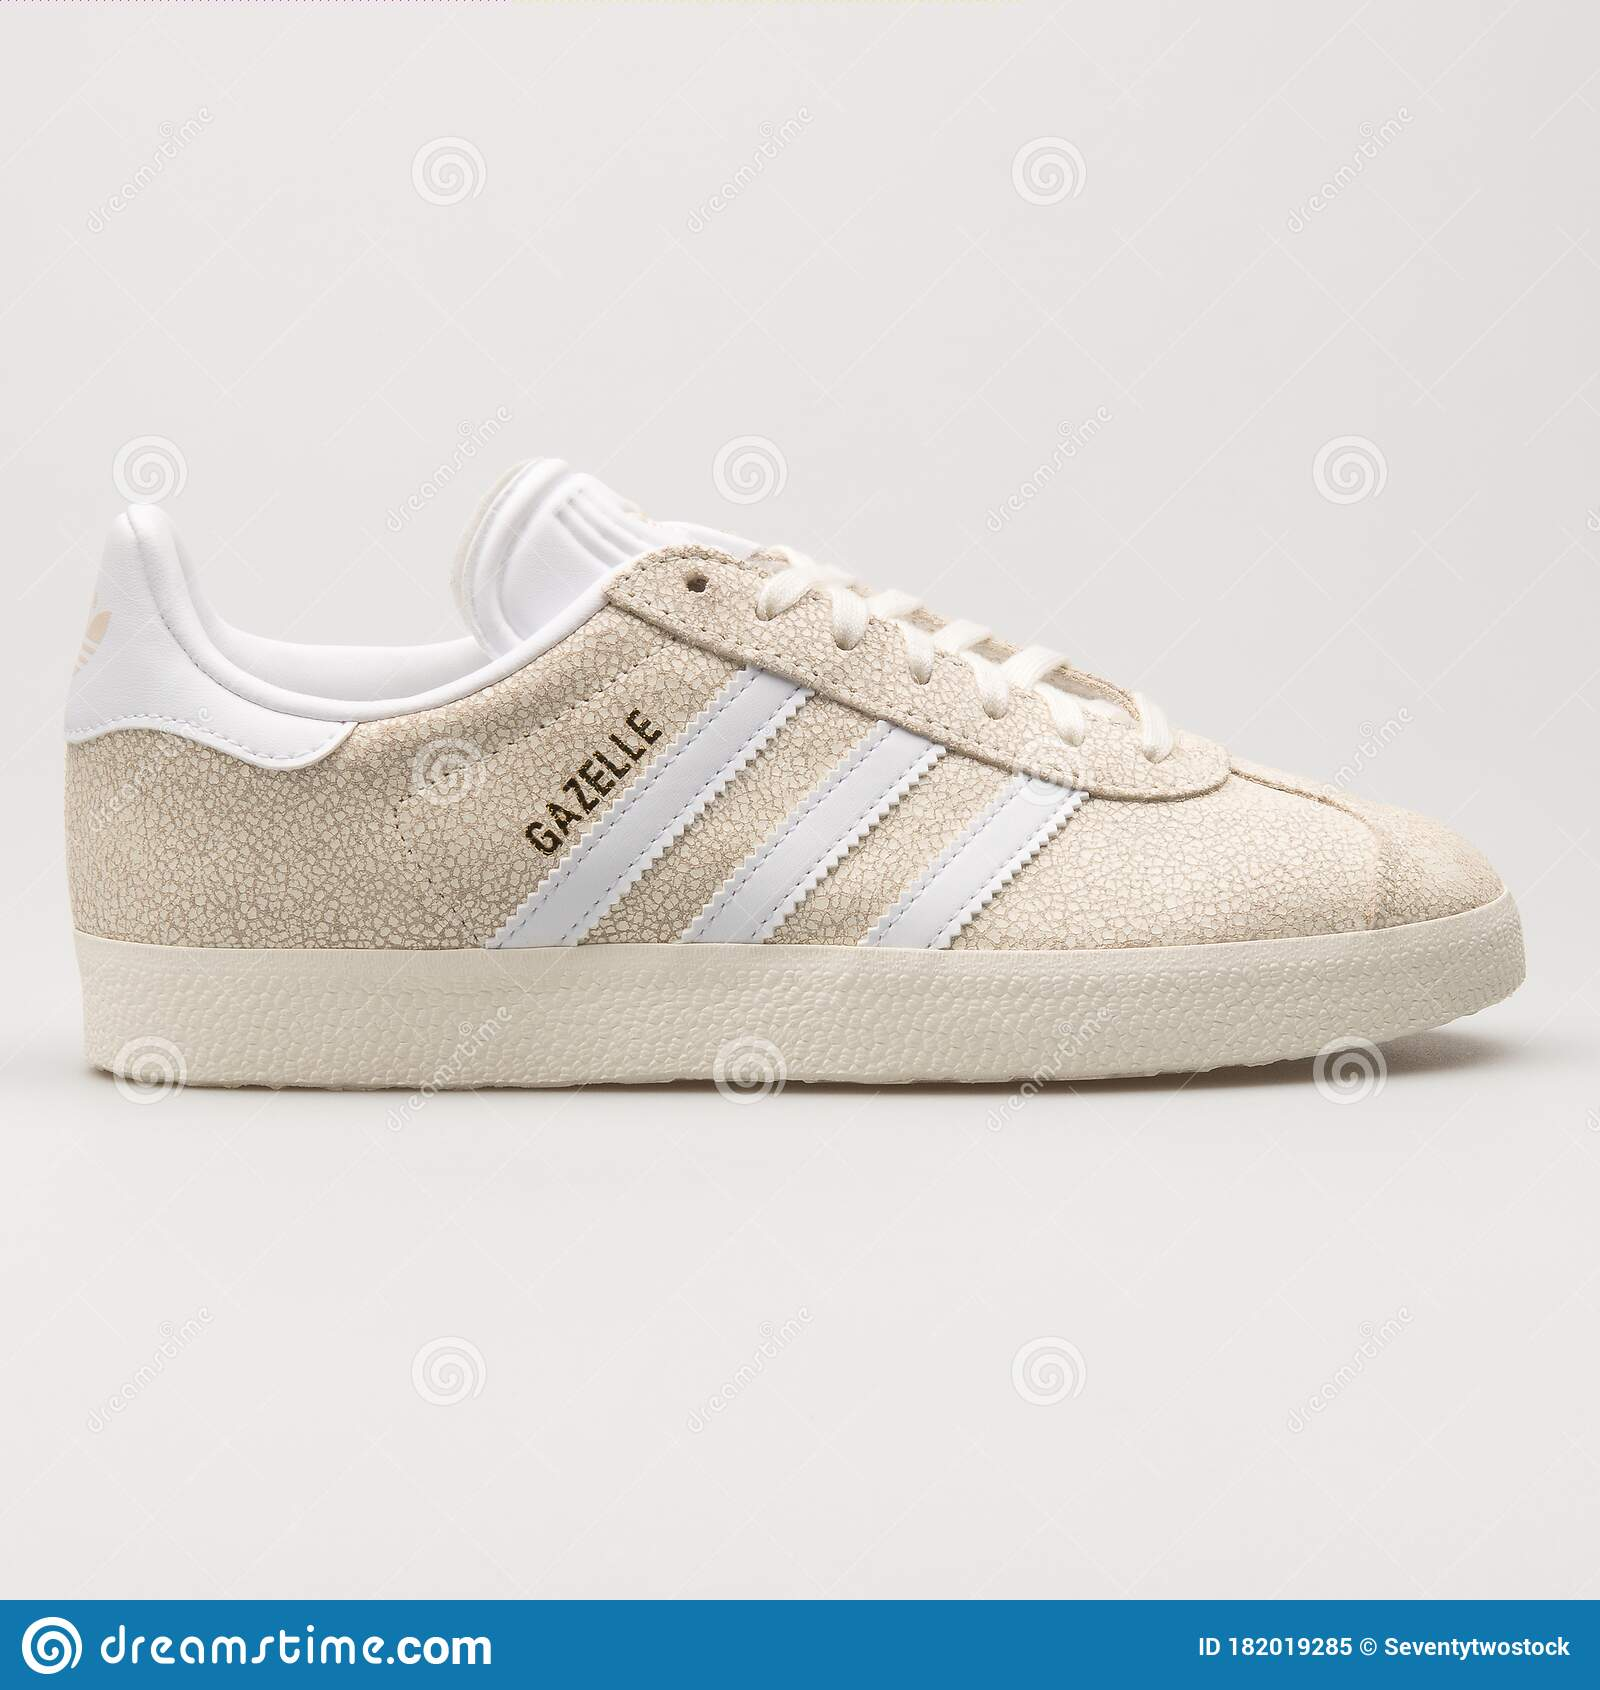 Adidas Gazelle Beige and White Sneaker Editorial Image - Image of ...